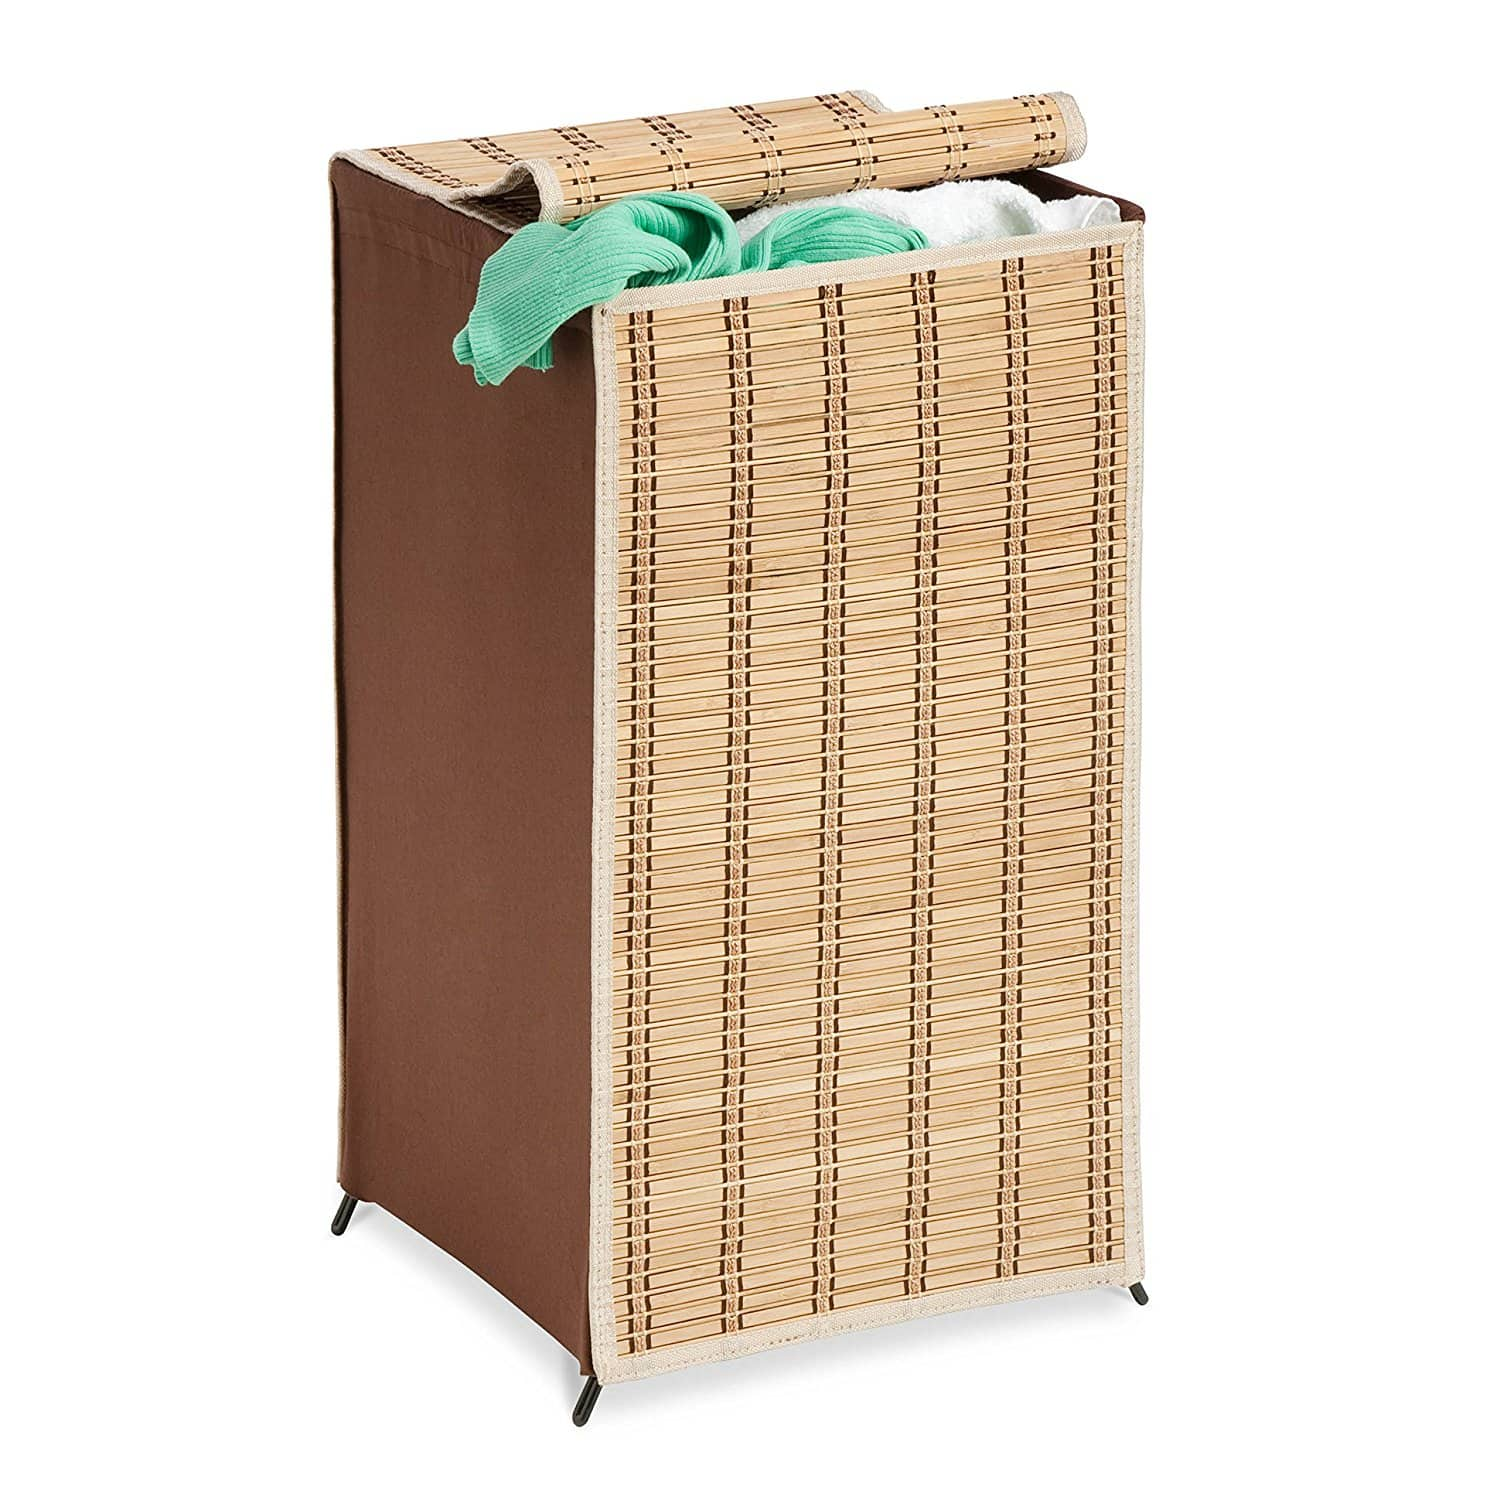 Honey-Can-Do Tall Bamboo Wicker Weave Laundry Hamper $9.92 at Amazon